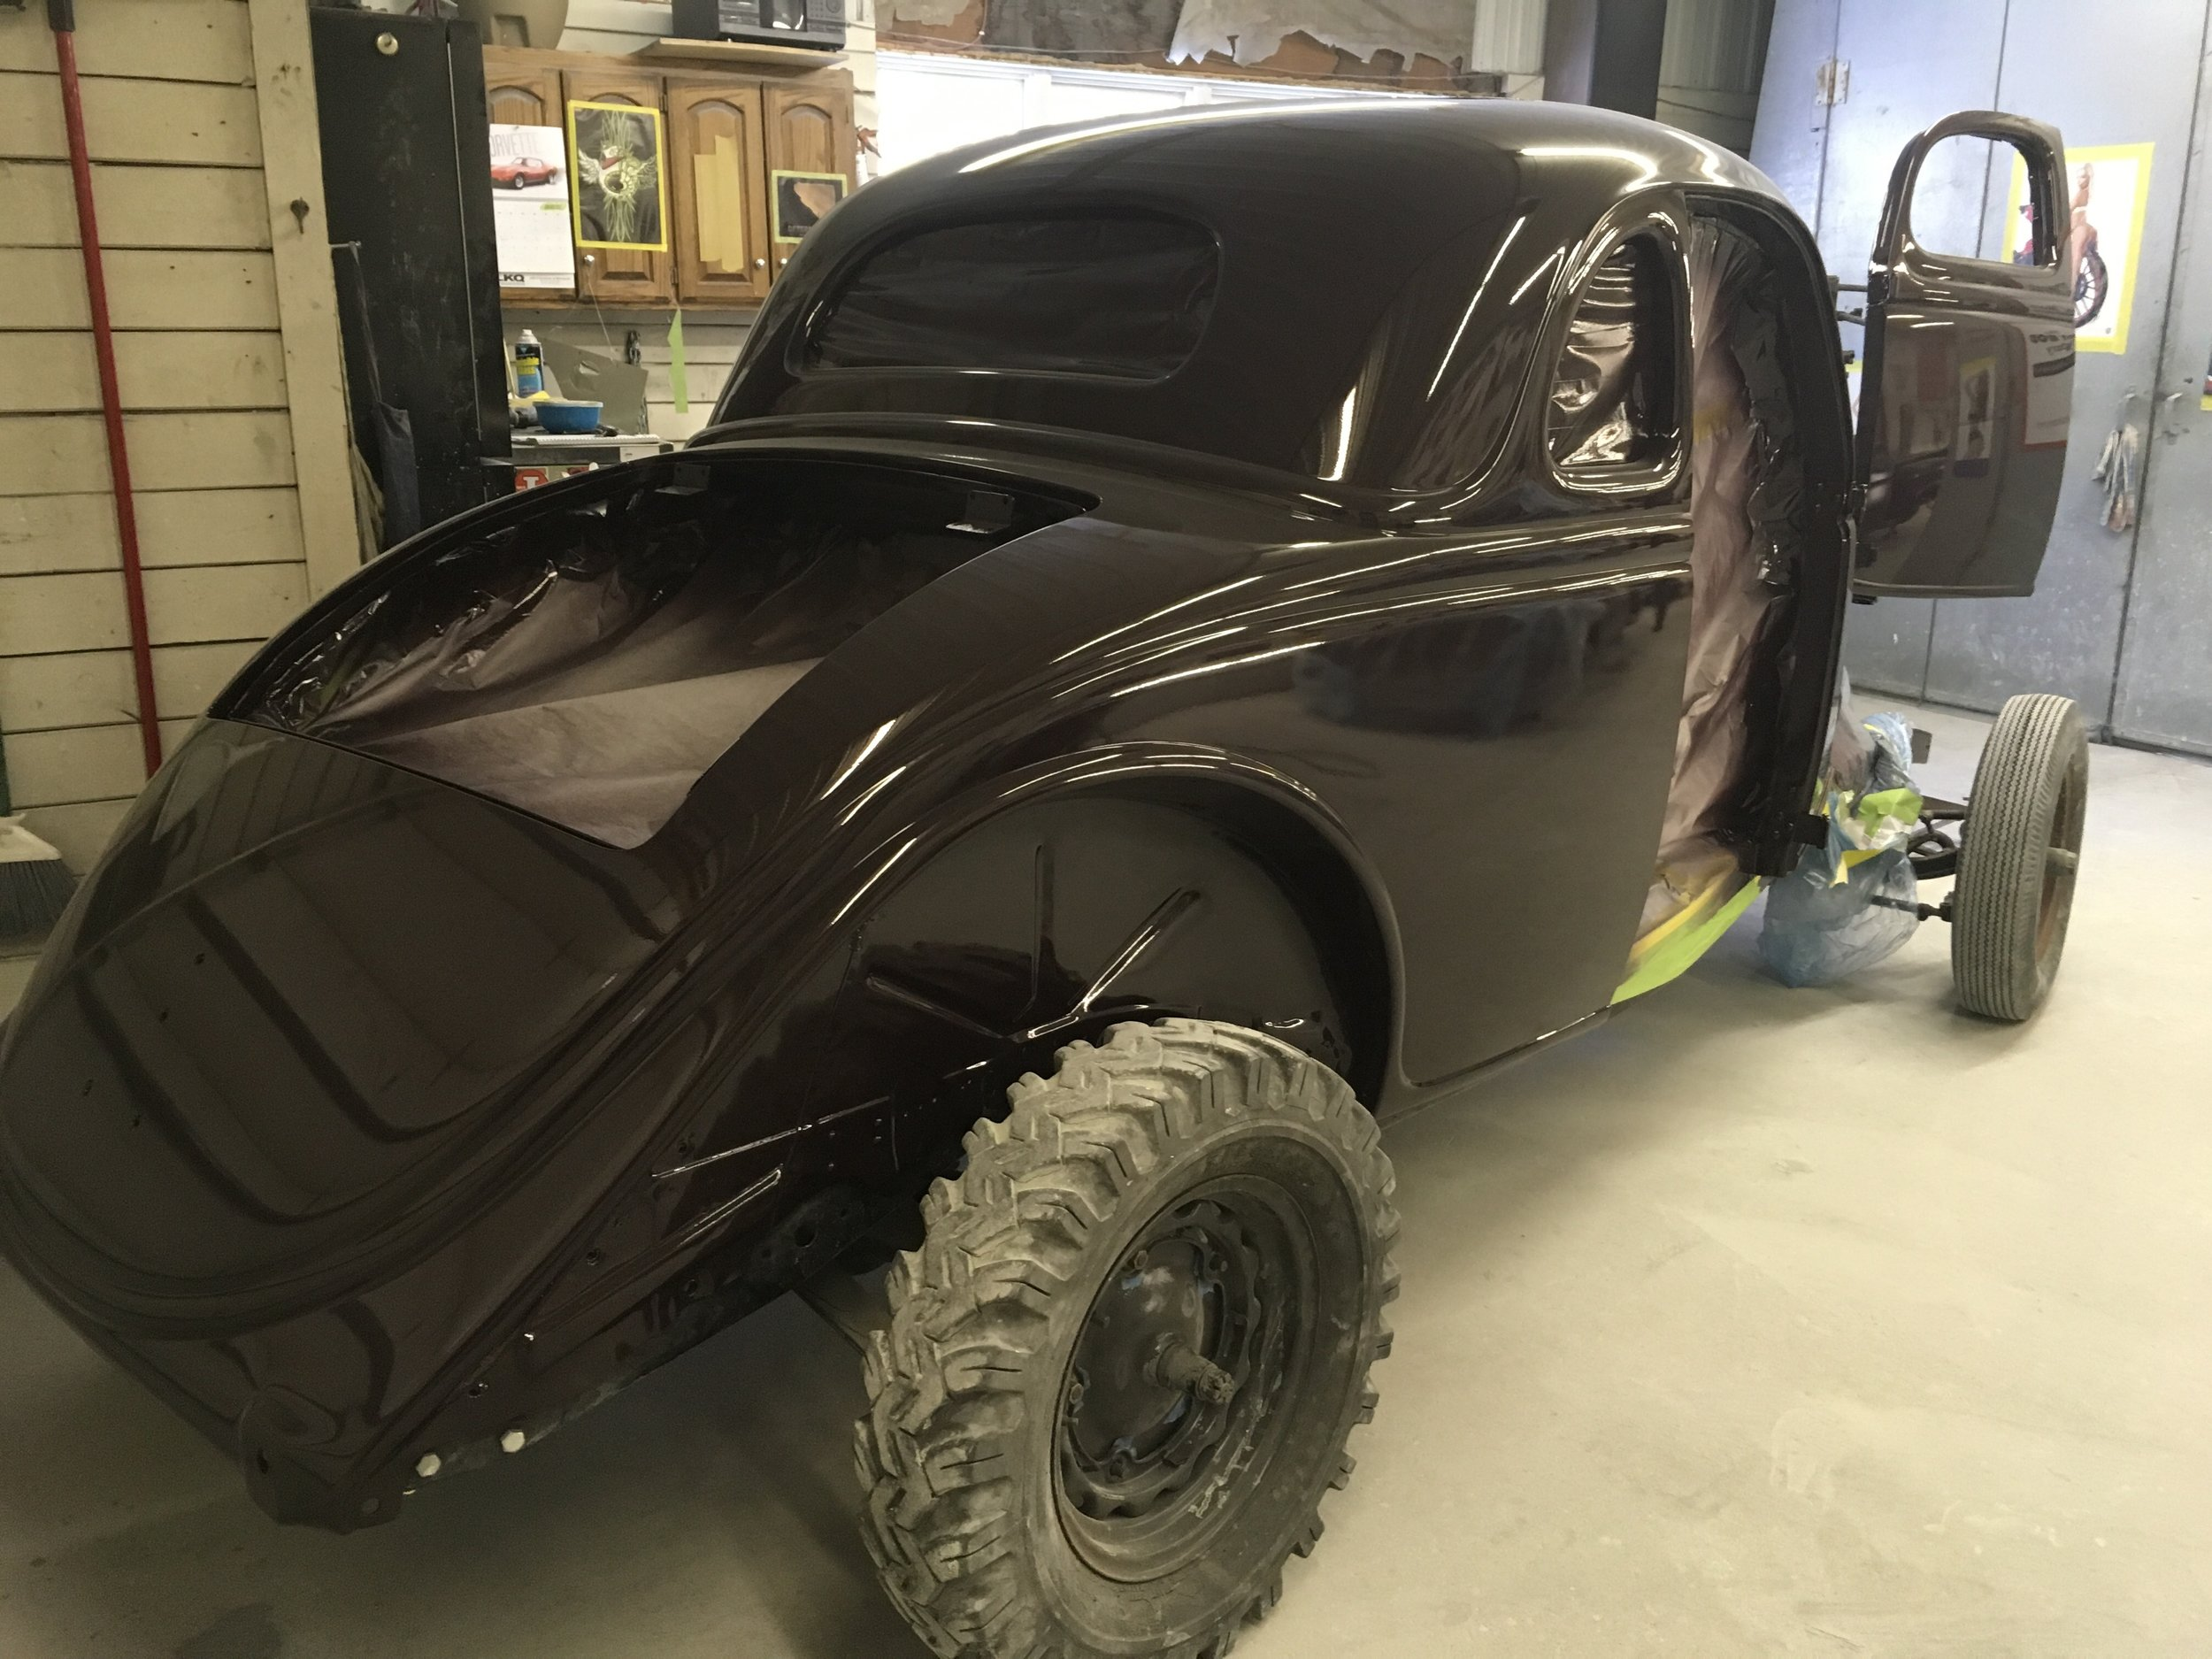 36-Ford-minneapolis-hot-rod-custom-build-restoration-6.jpg